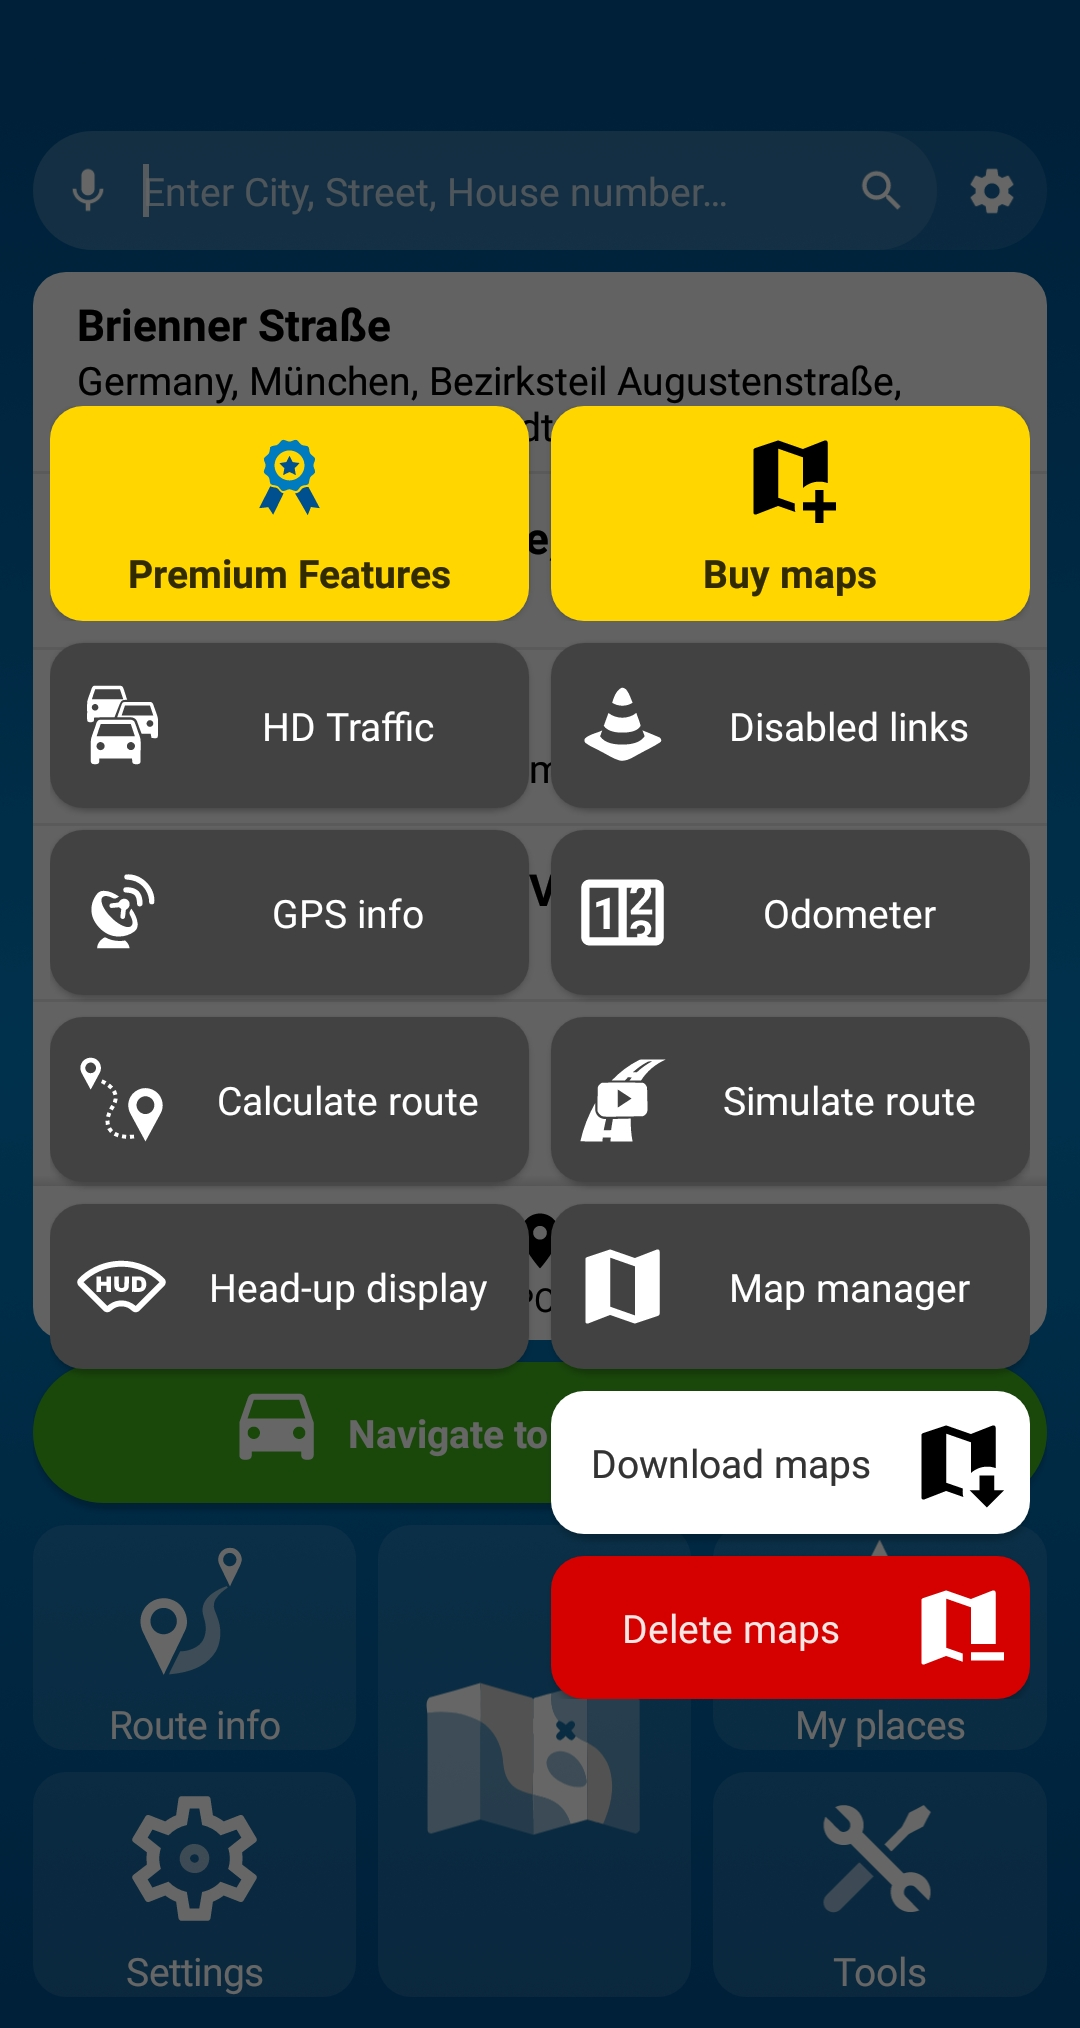 MapFactor Navigator 6 - Tools with Map manager